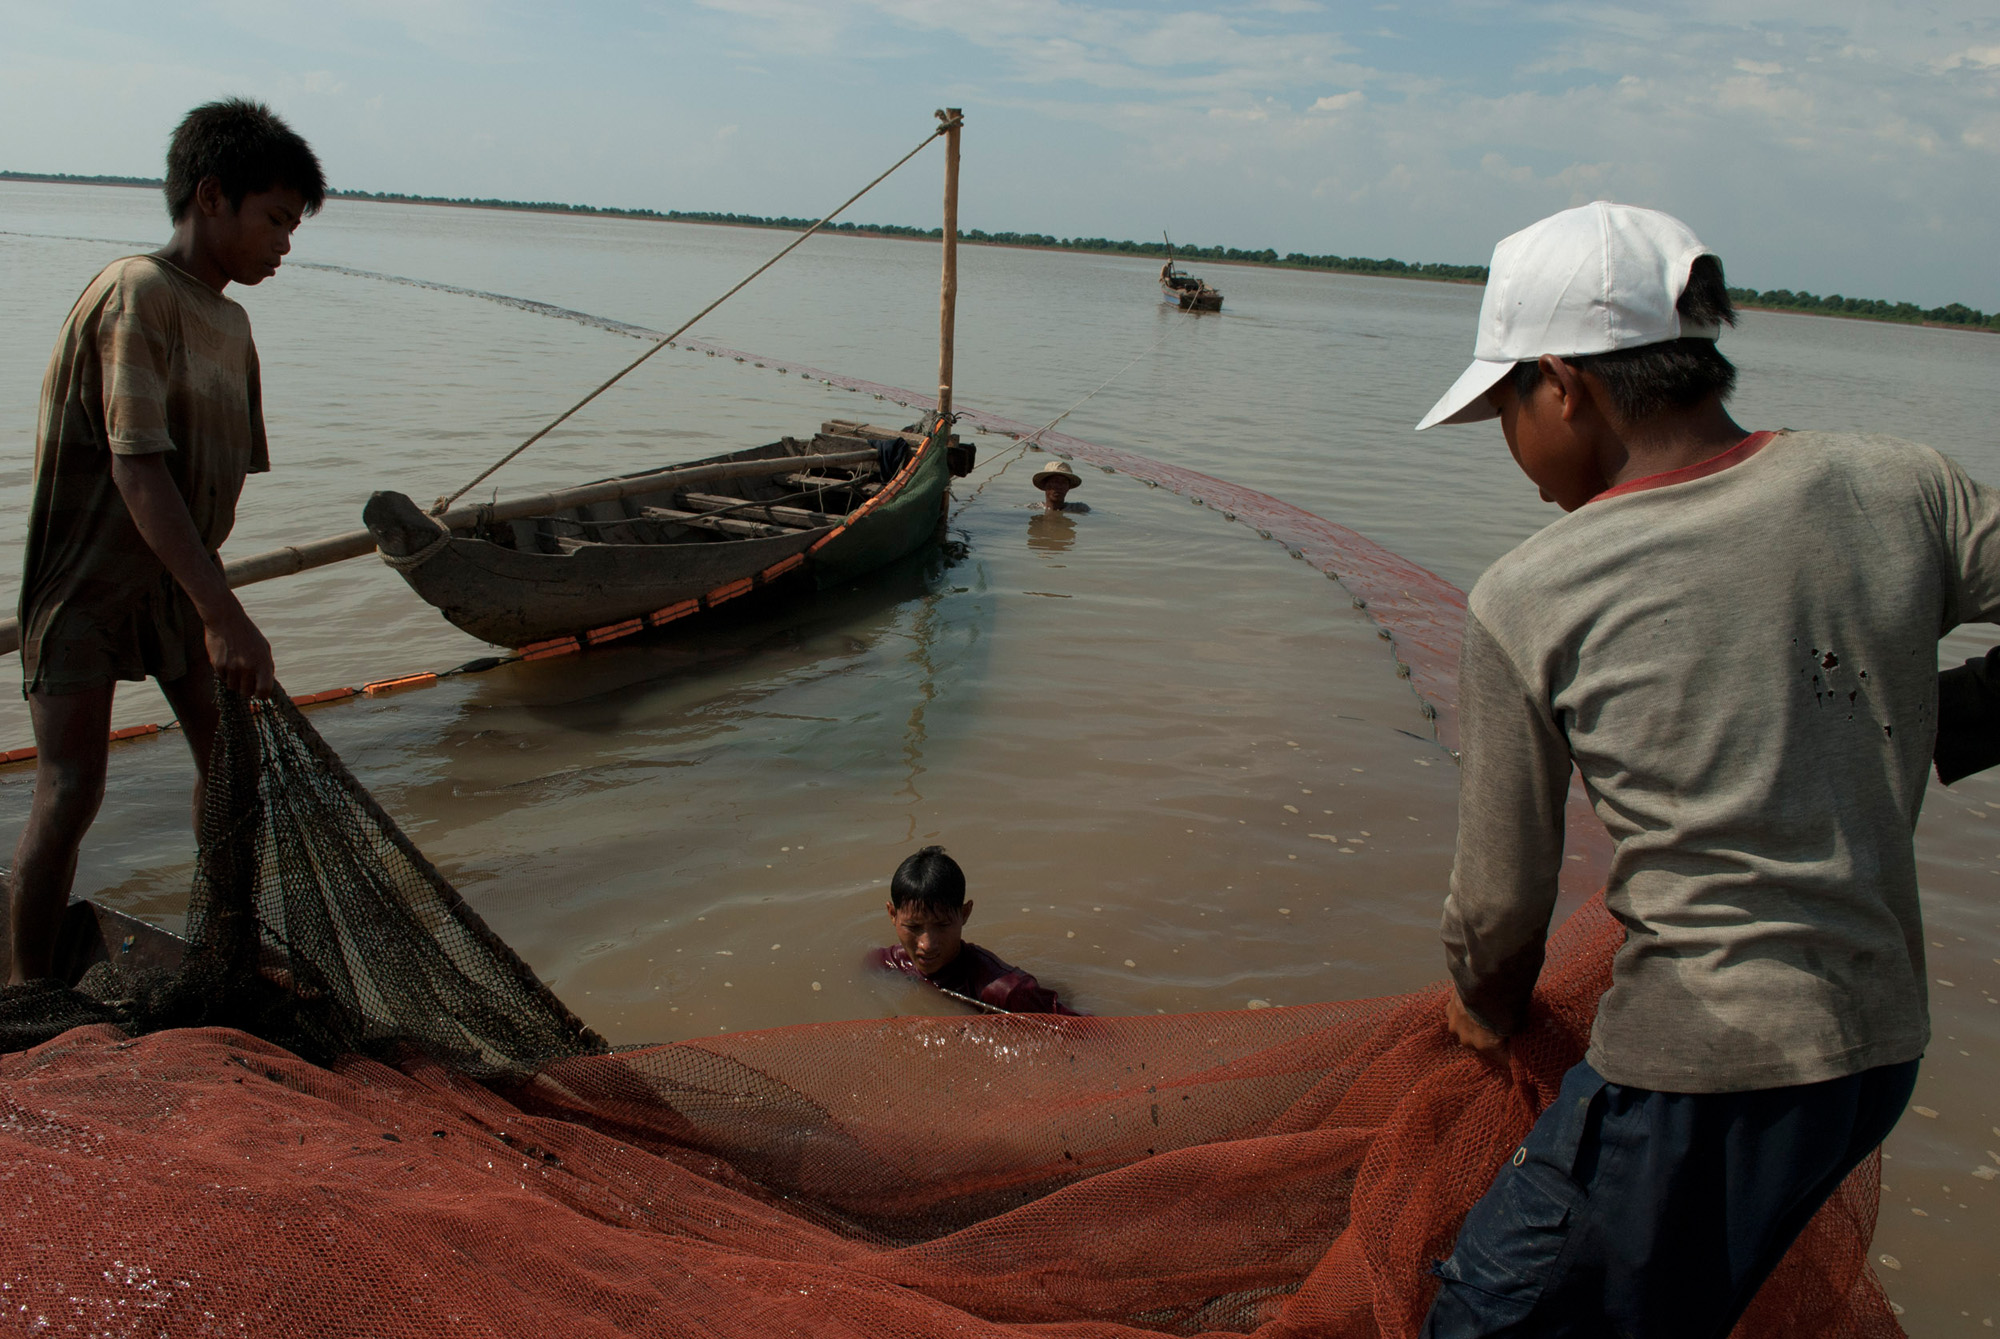 Boys pull in a fishing net on the Tonle Sap lake in Cambodia.